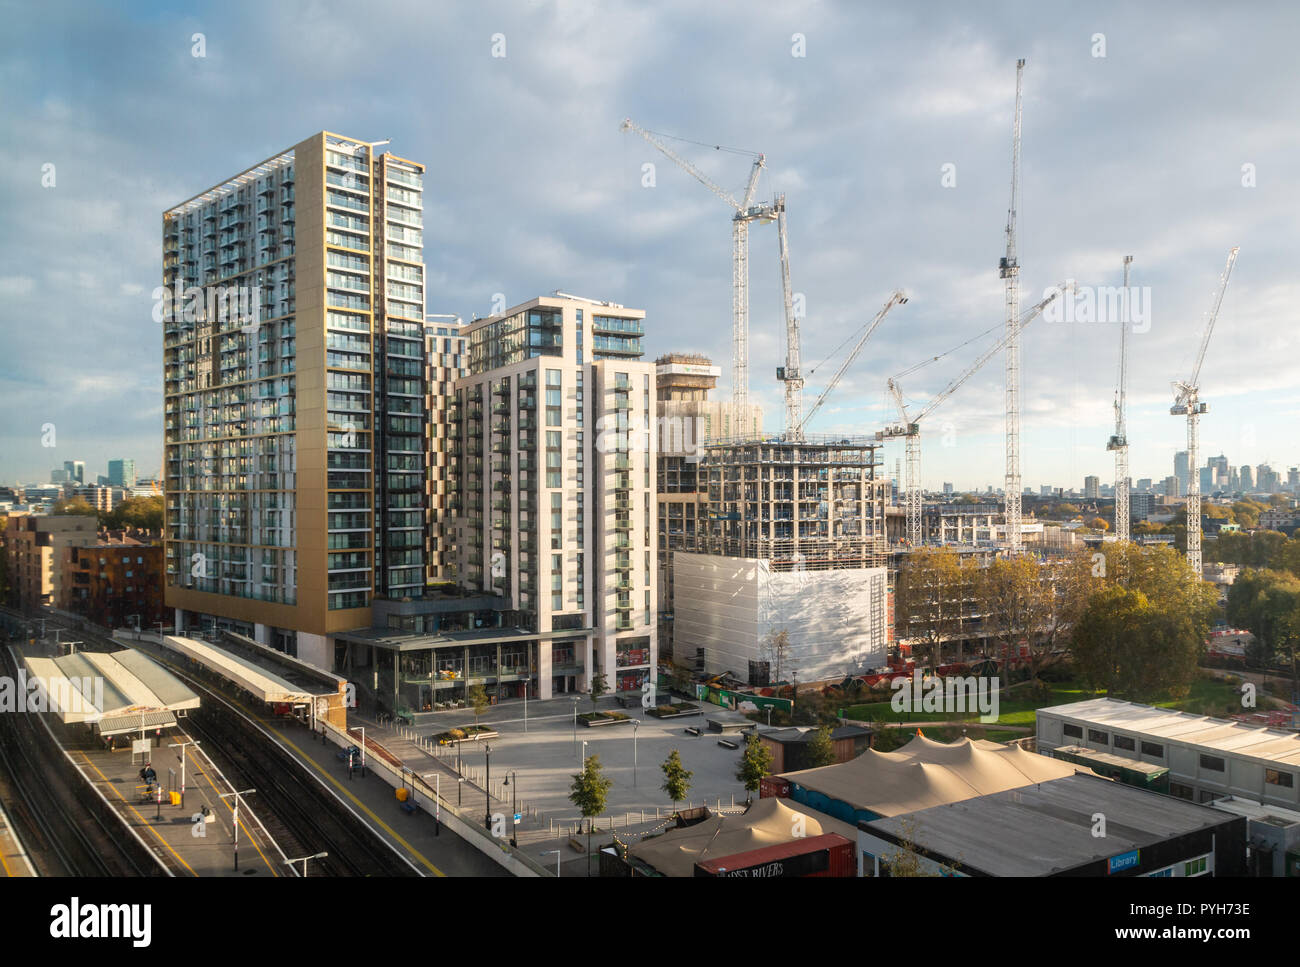 Part of the regeneration of Elephant and Castle, London - Stock Image